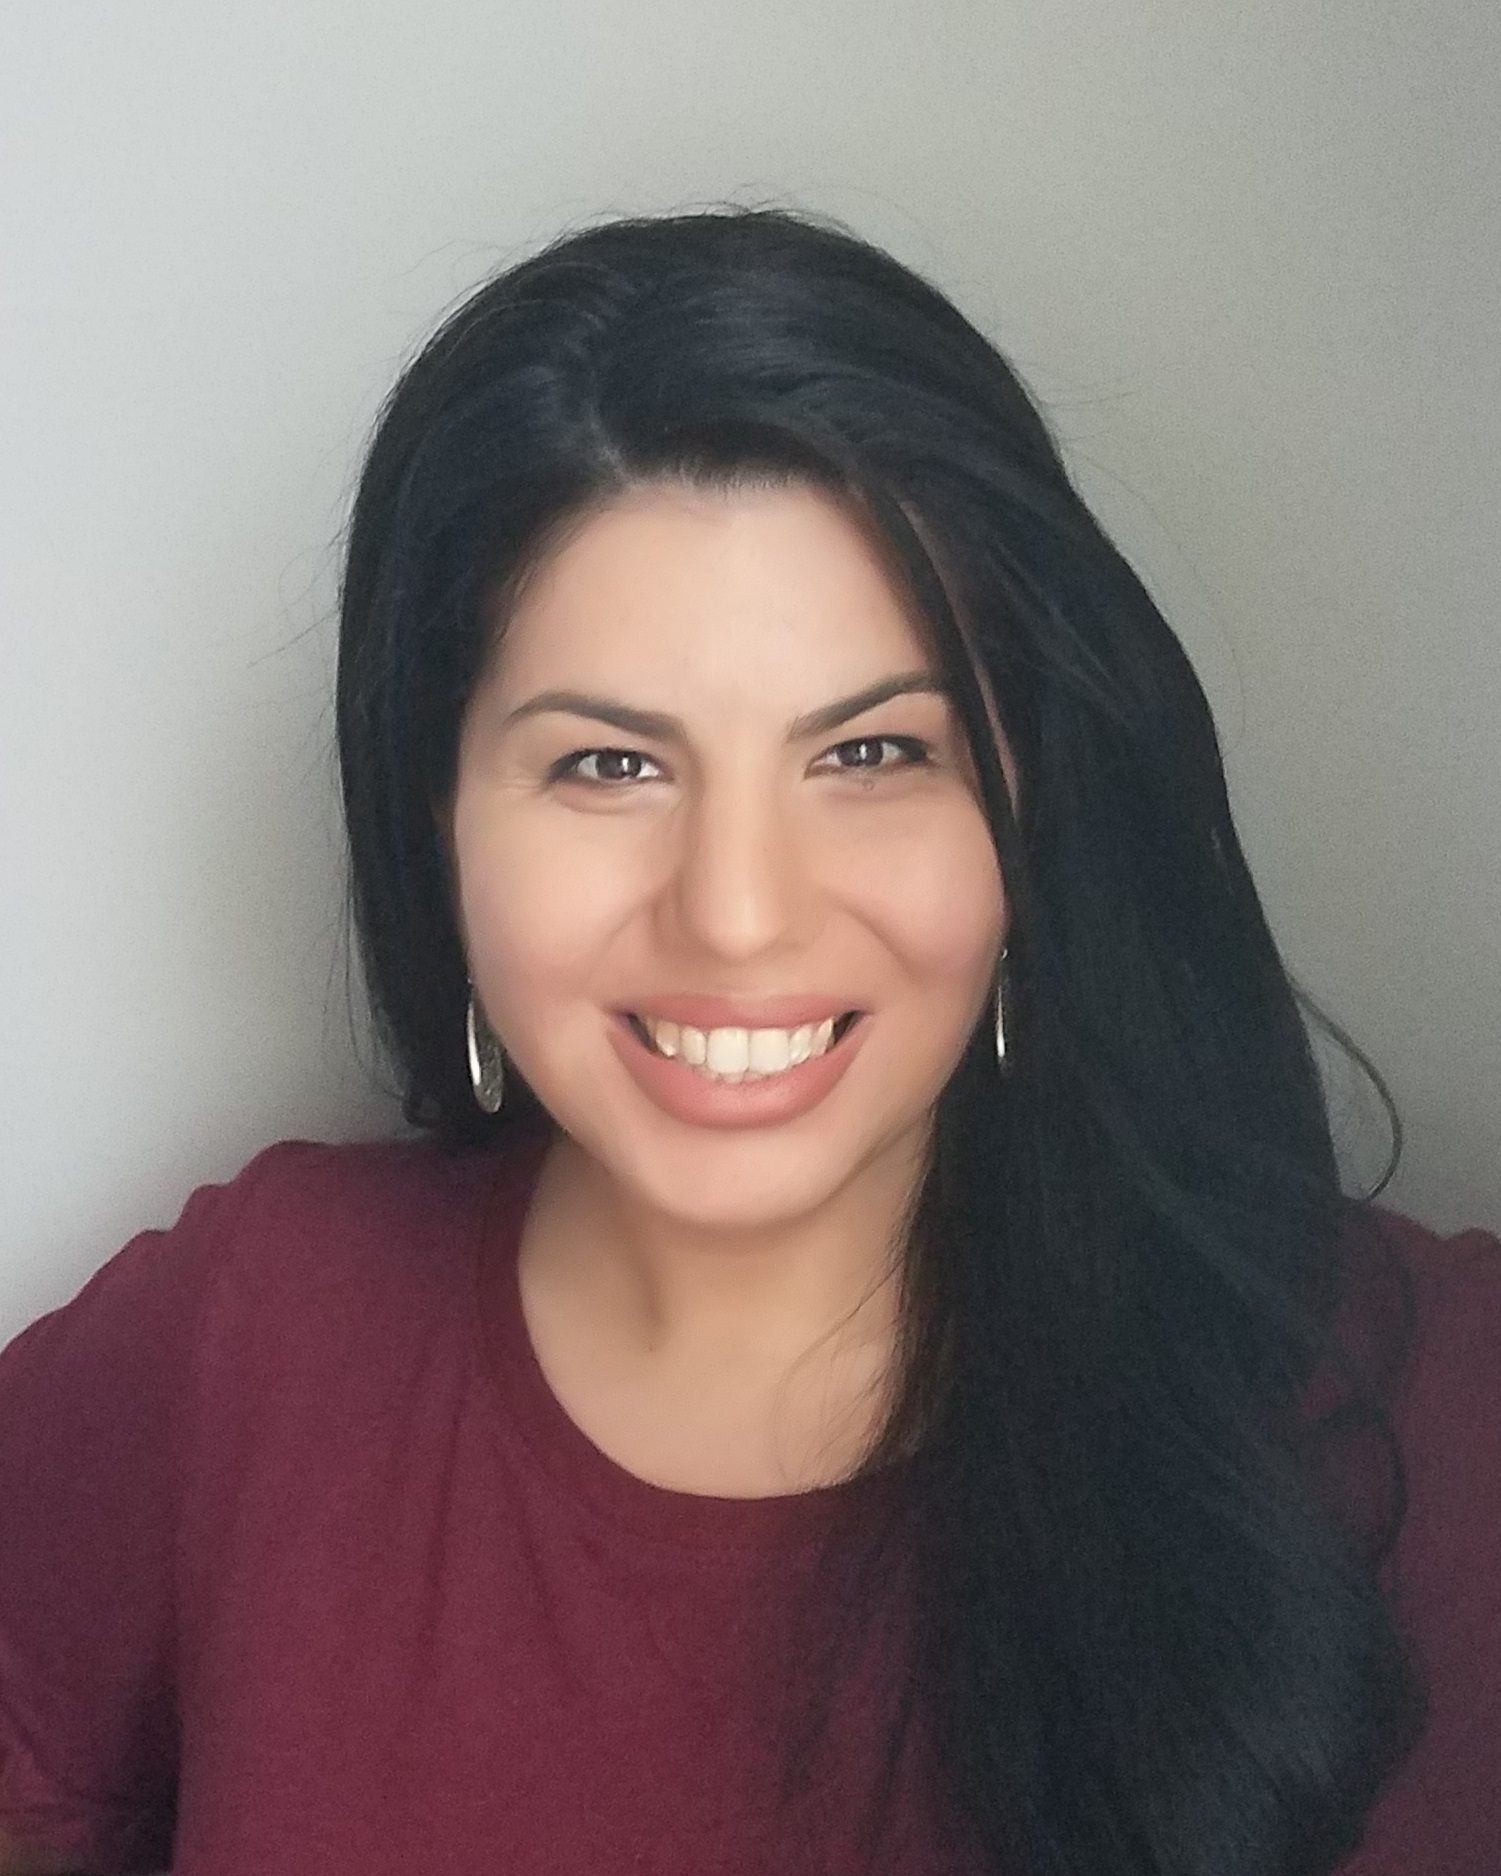 Melissa Torres is a Certified Nurse Midwife currently practicing in Loudoun county, Virginia. She graduated with a Master's in Nursing degree from Frontier Nursing University in 2017 and has over nine years of nursing experience caring for women. She currently lives in Prince William County with her husband of 18 years and two boys.